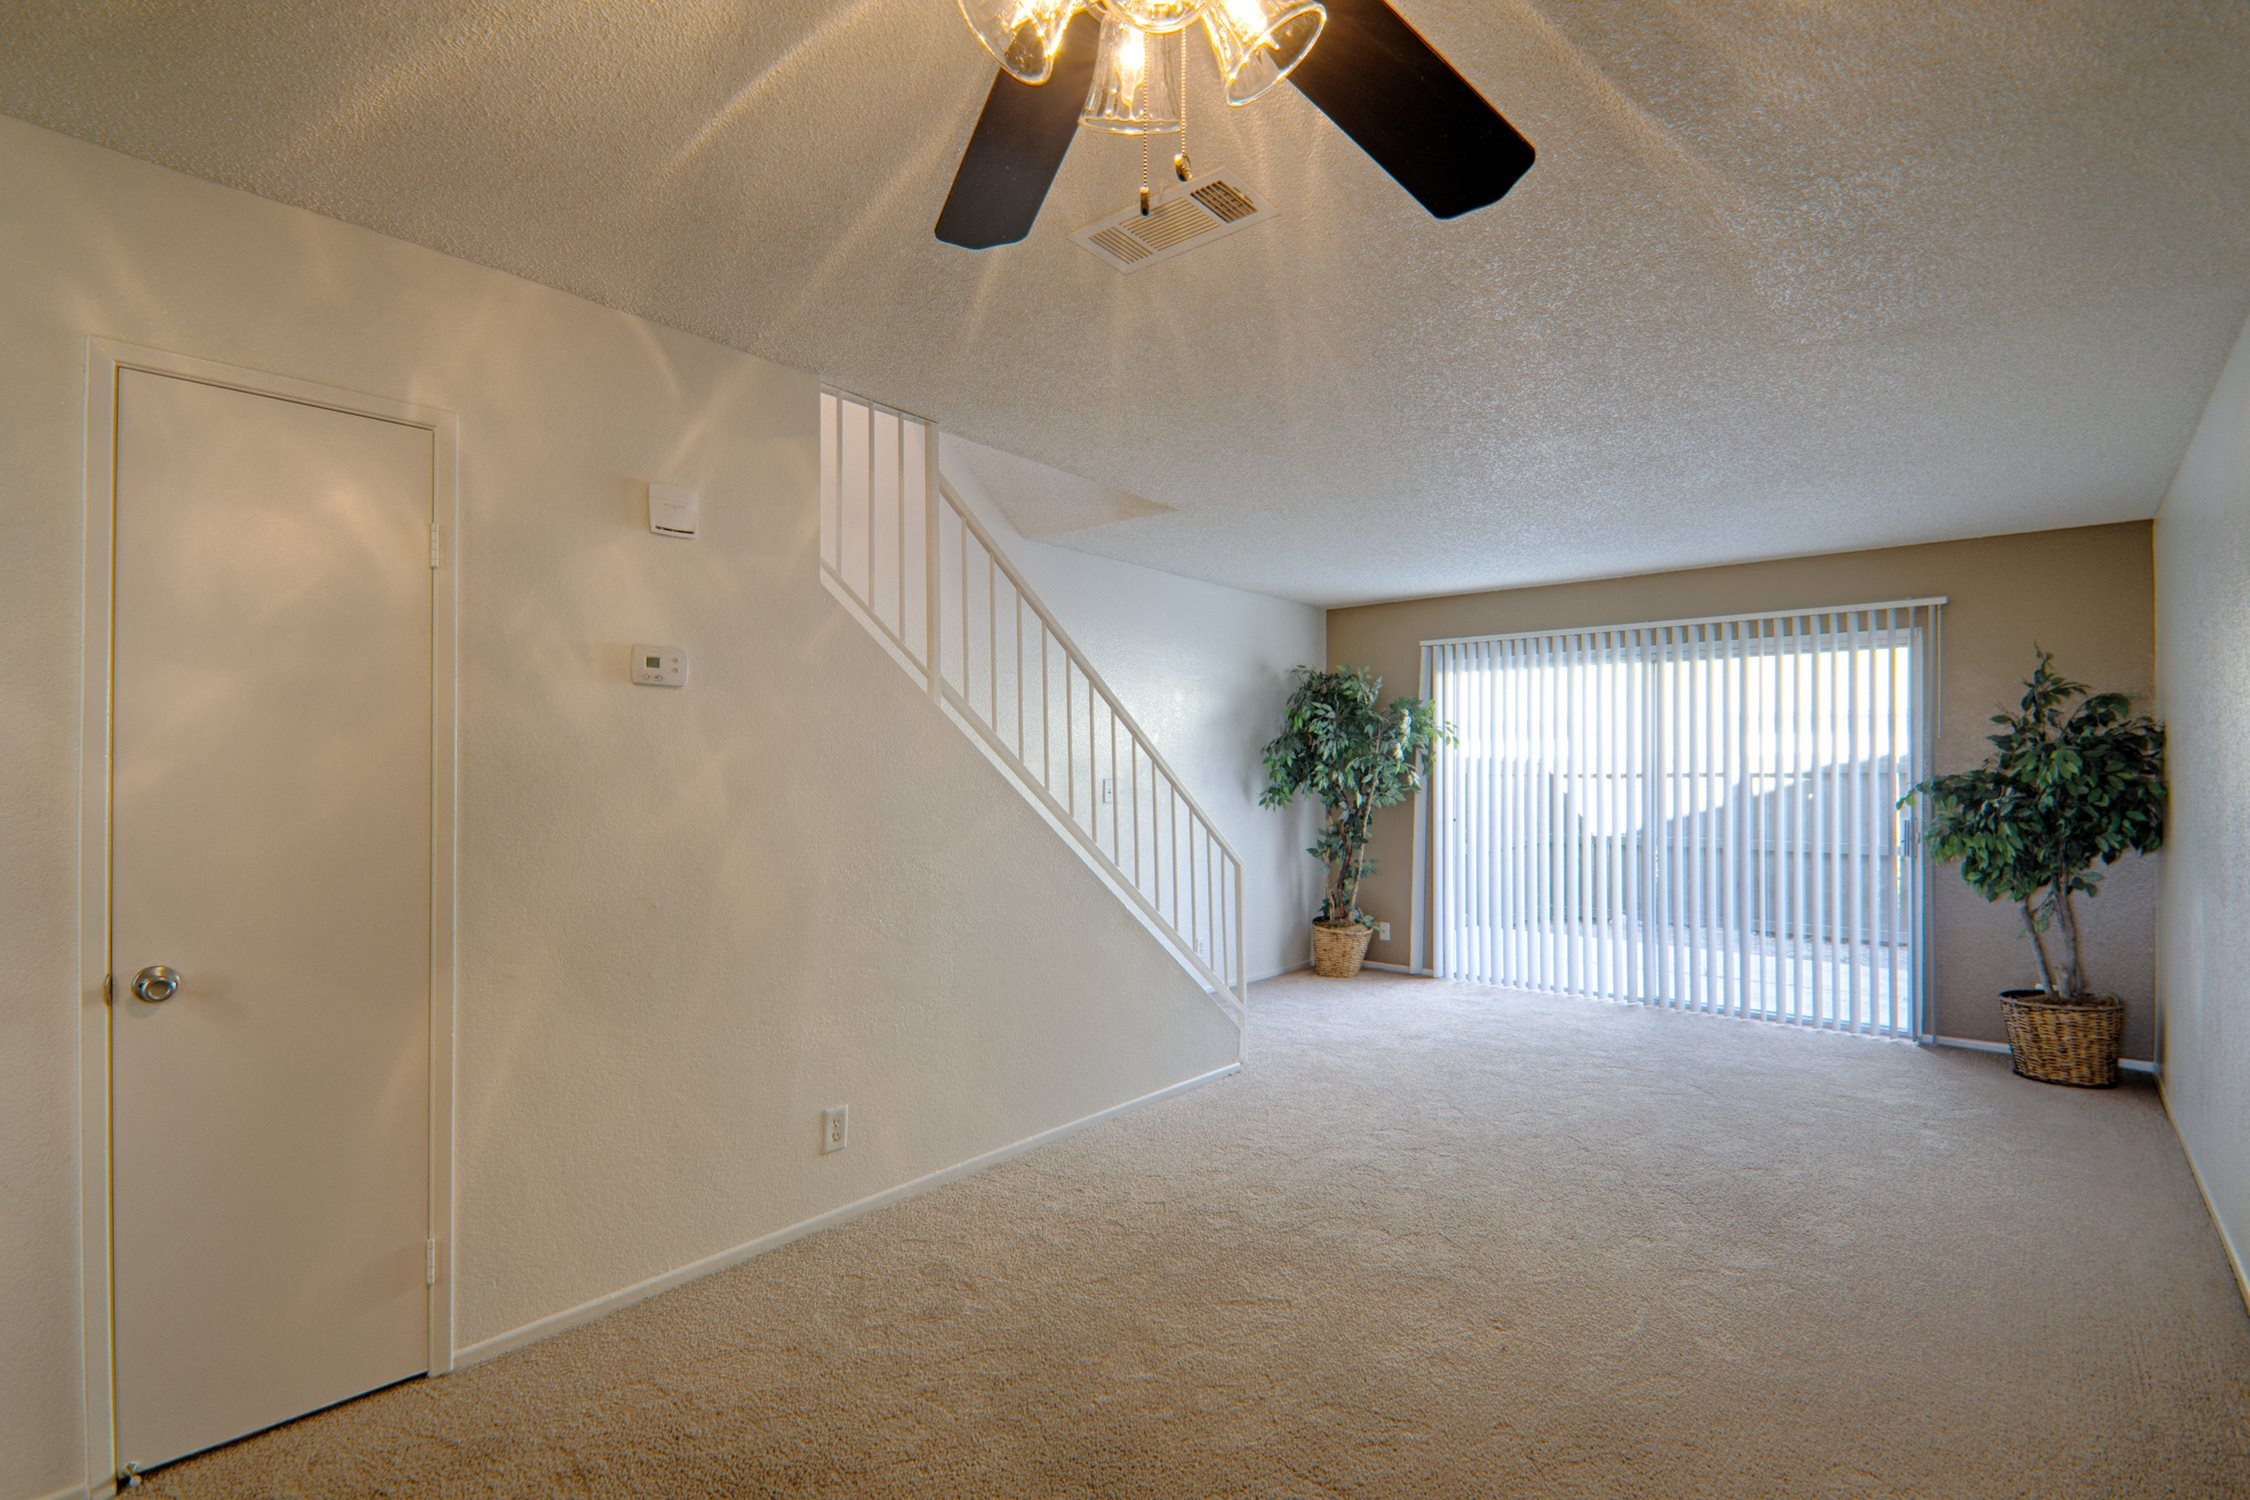 Living Room at Woodlands West Townhomes, Lancaster, CA,93536